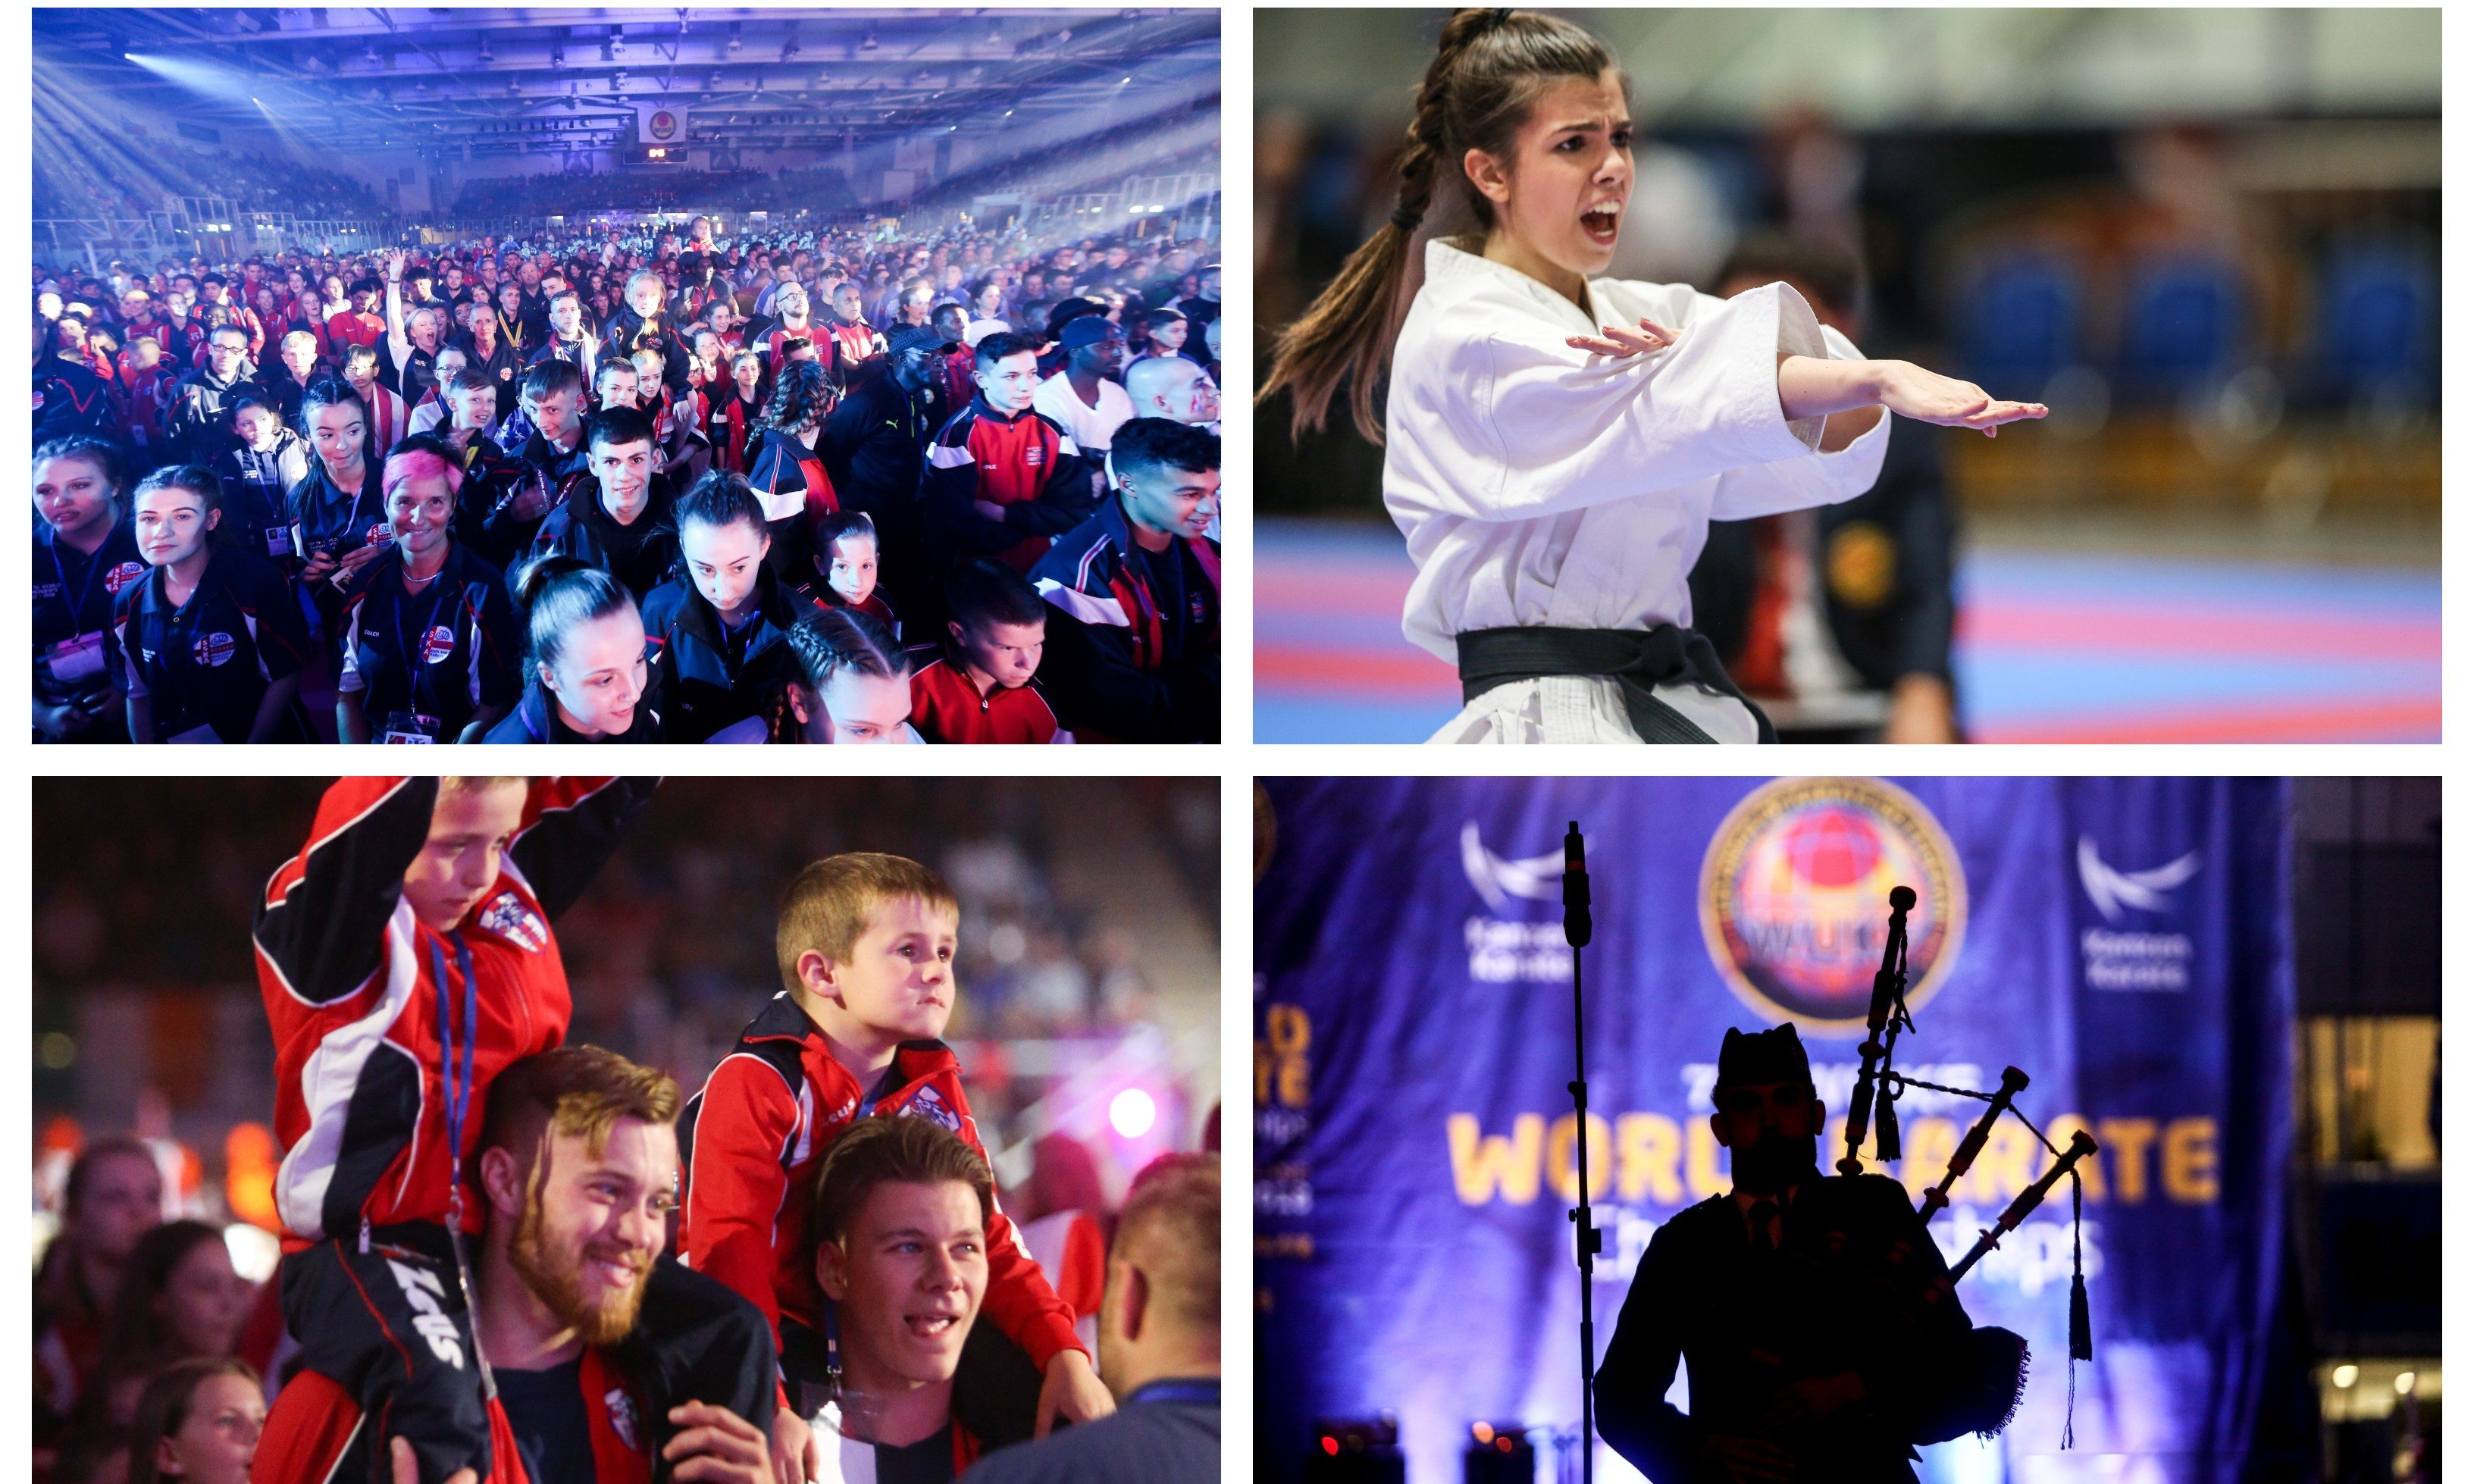 The official opening Ceremony of the 7th WUKF World Karate Championships